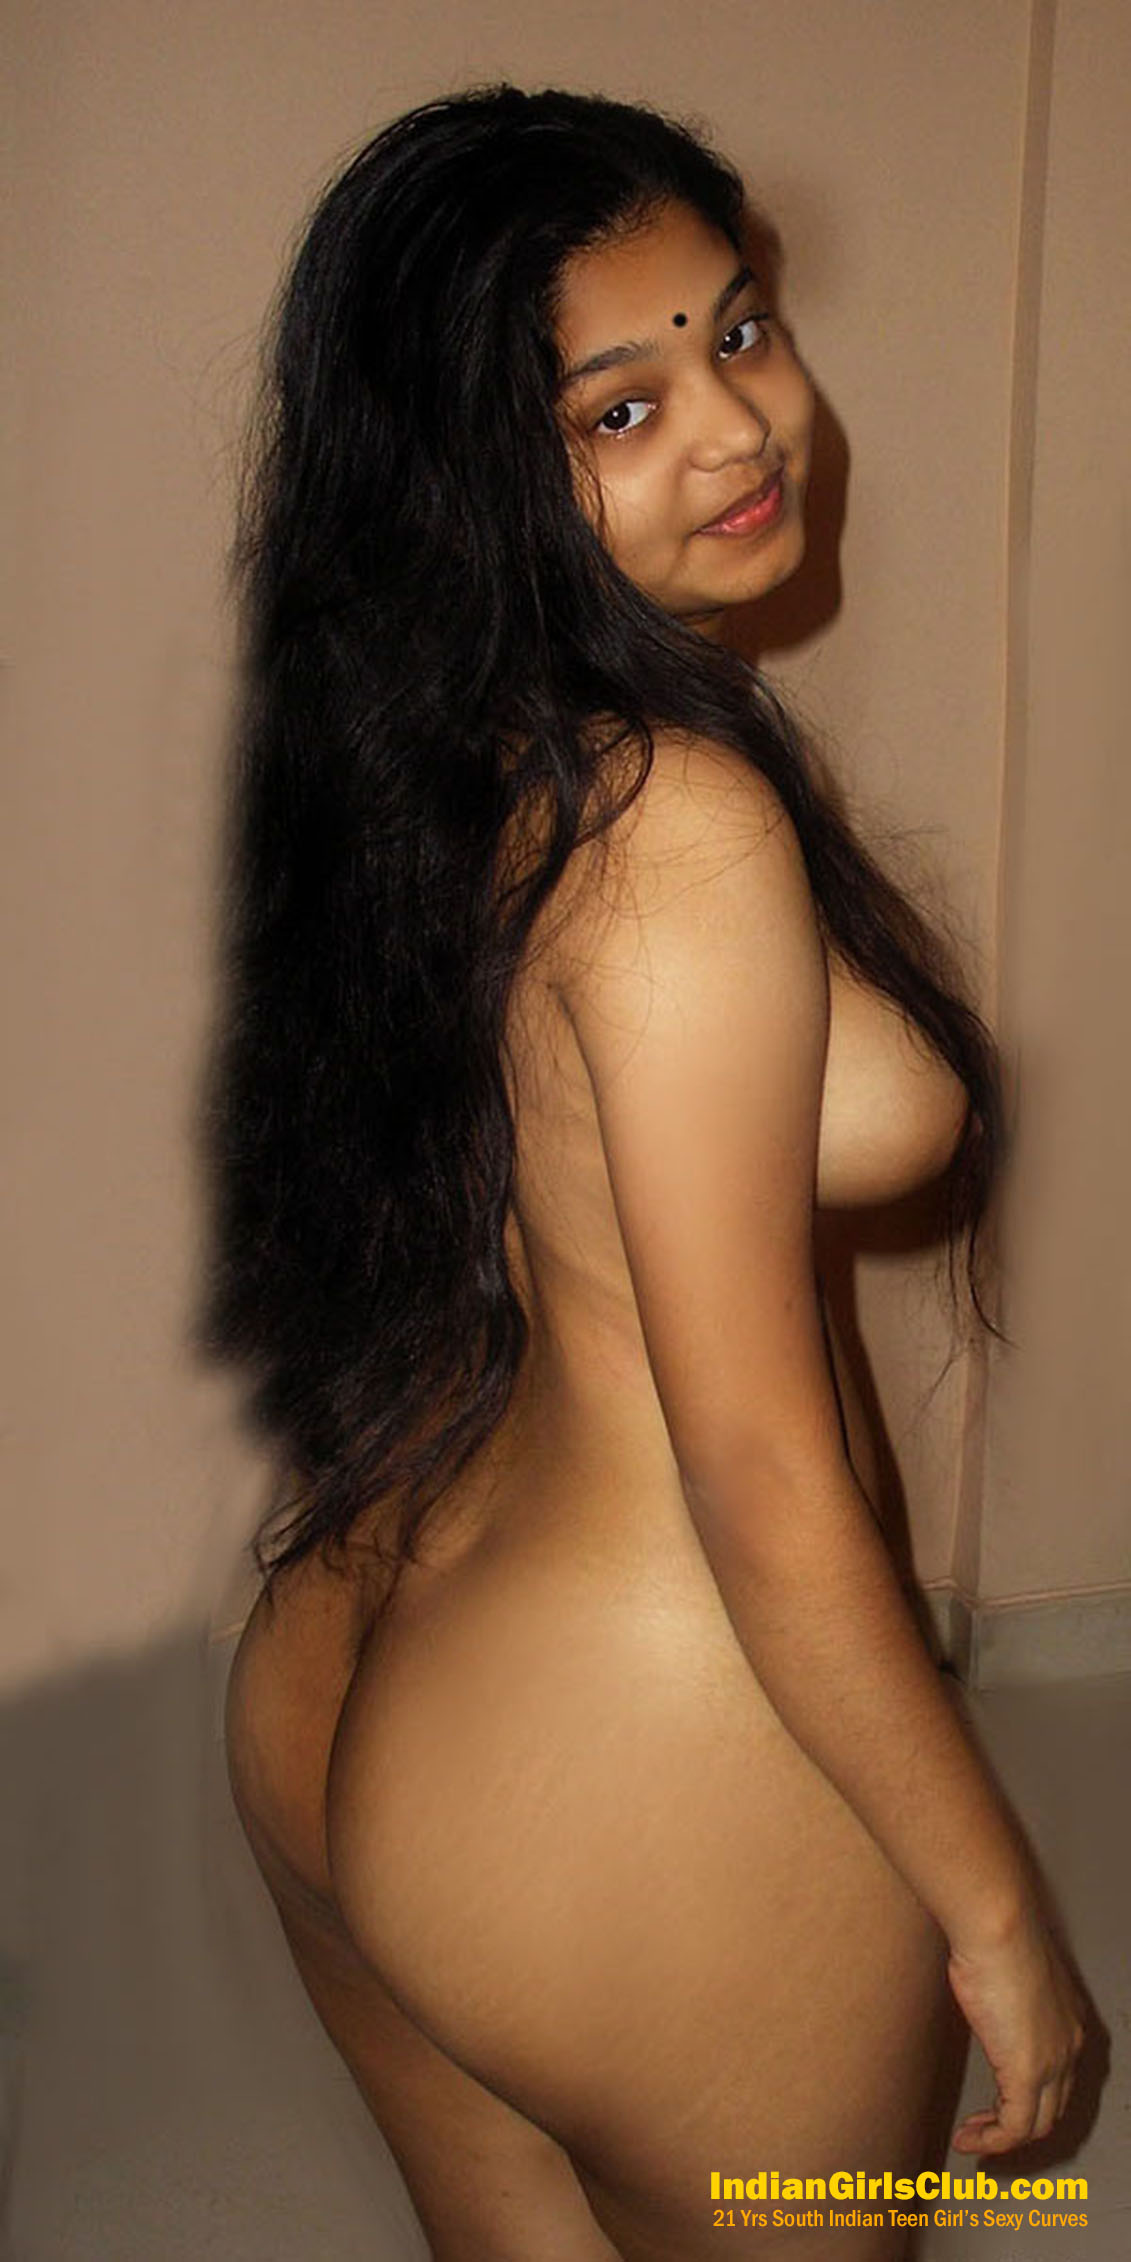 Nude Sexy Photos Girls Indian